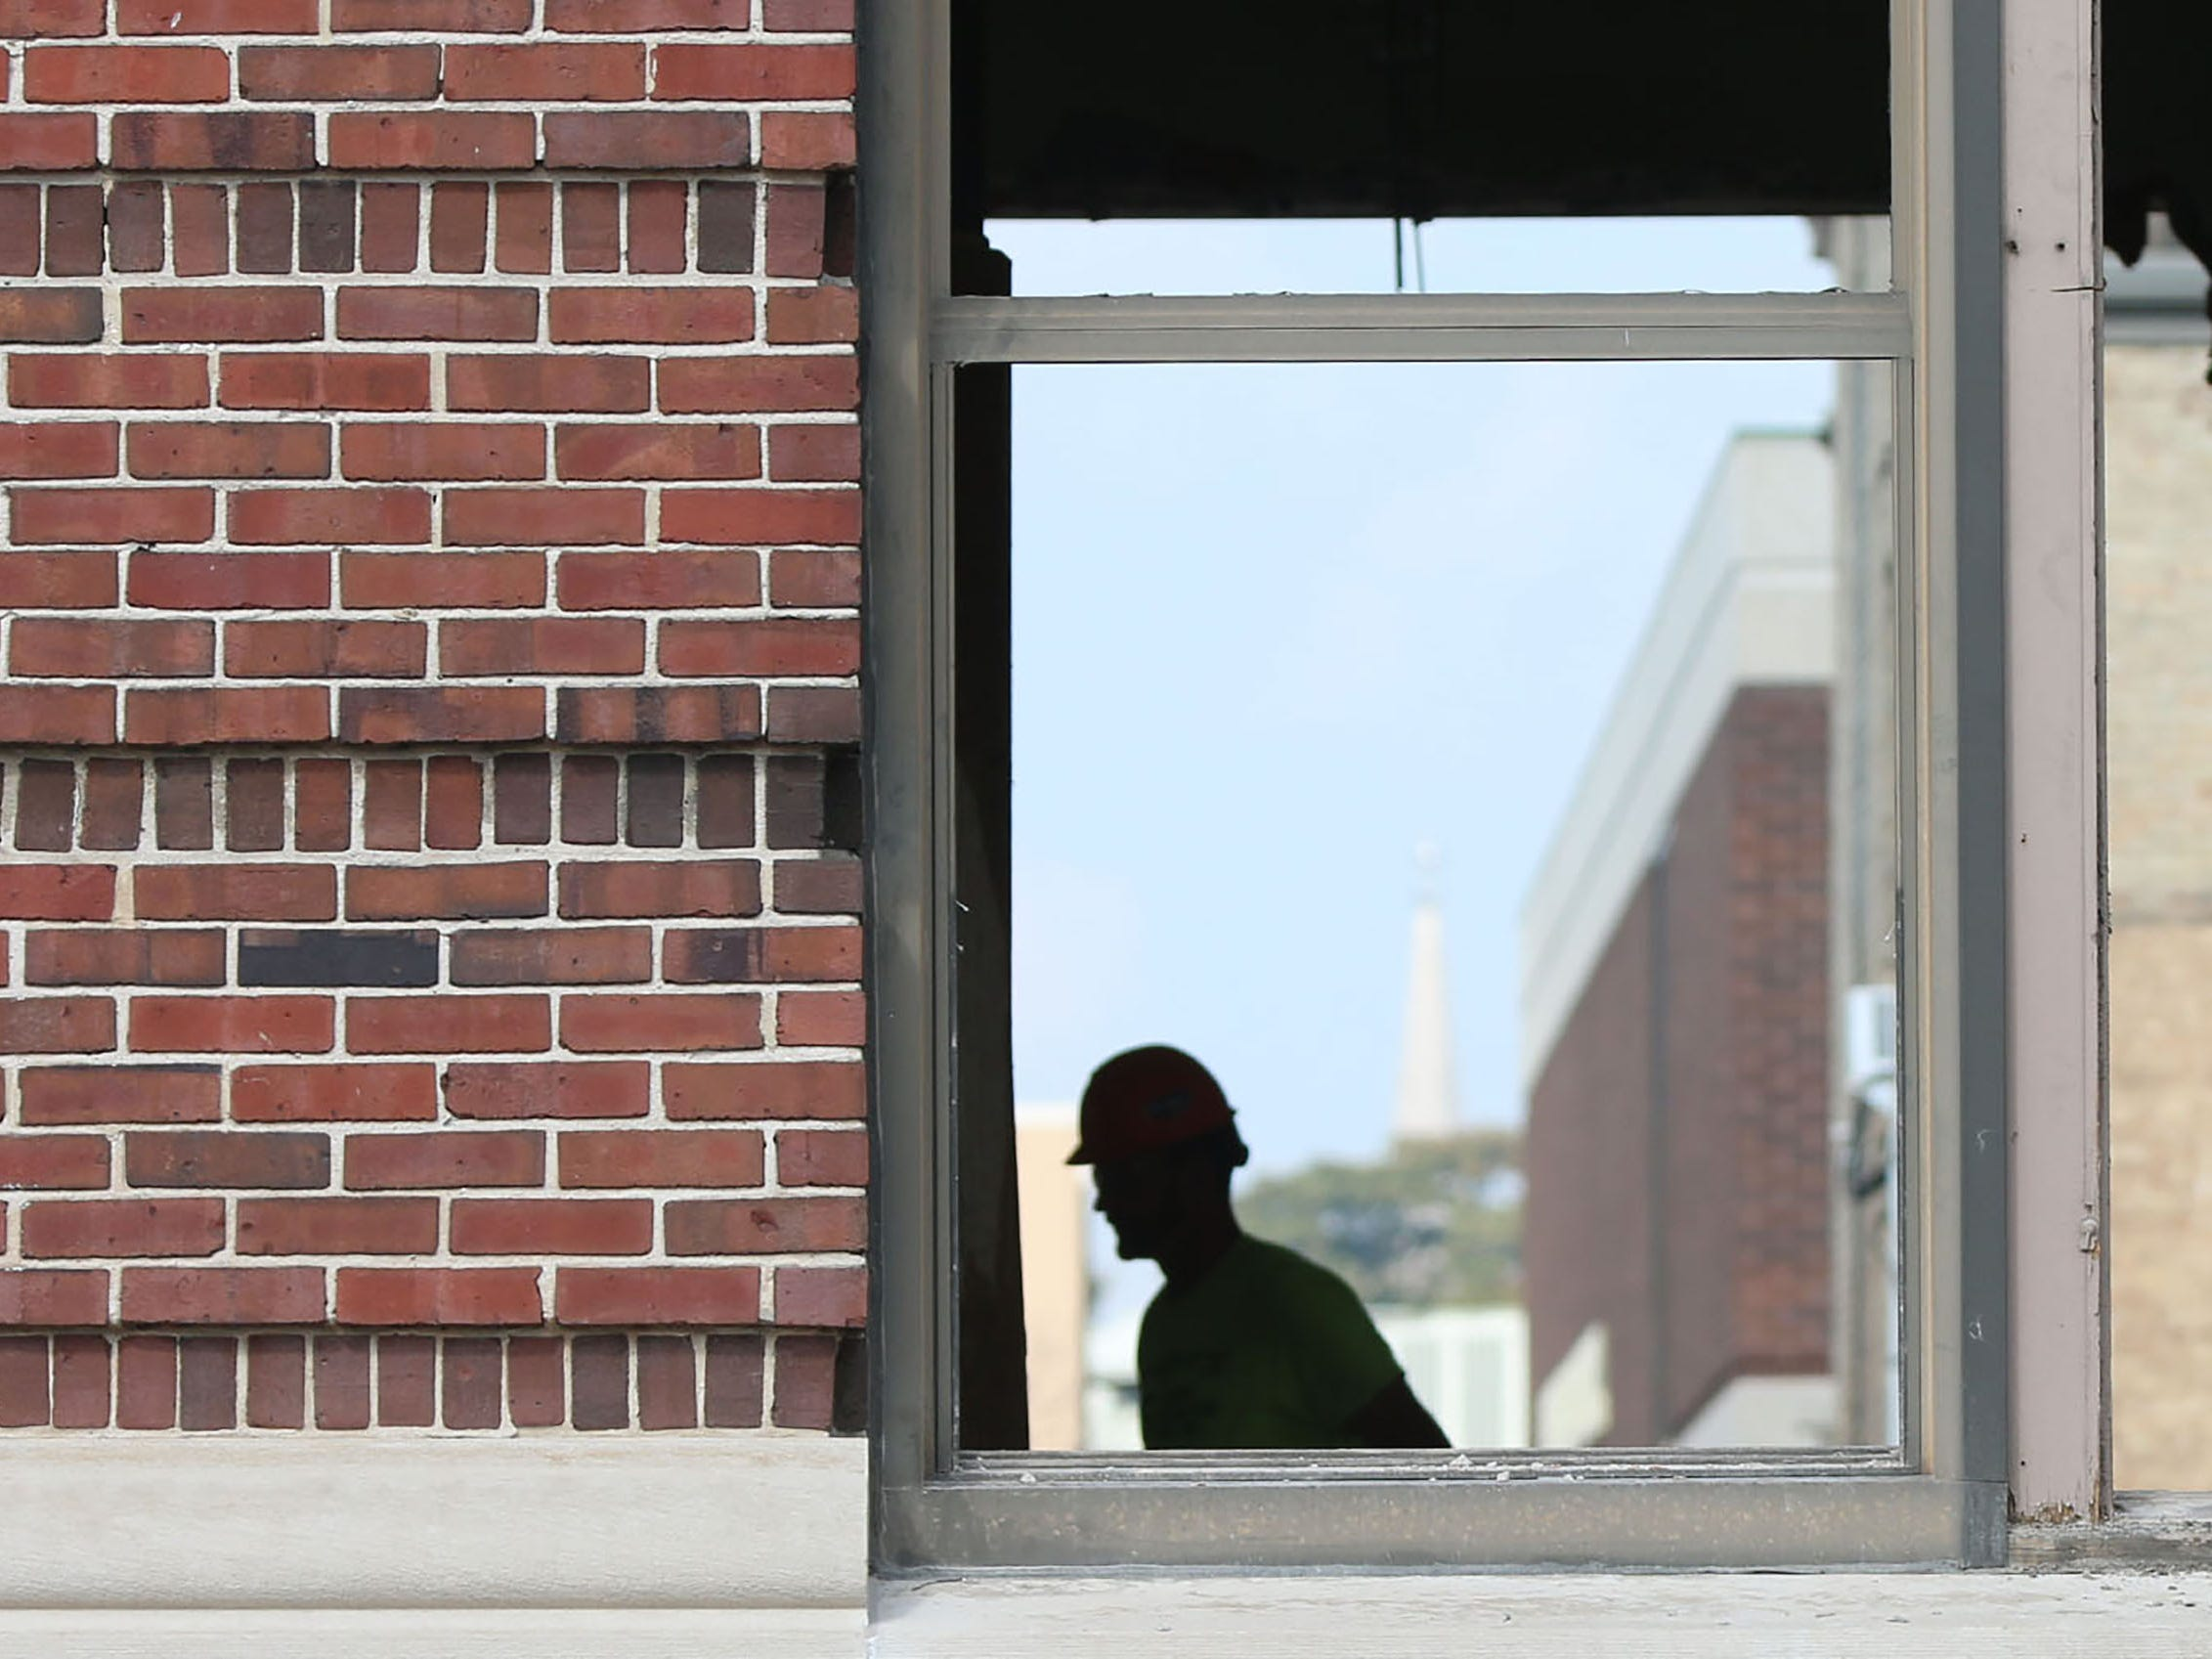 A Quasius employee silhouetted by a window frame at Sheboygan City Hall, Tuesday, October 9, 2018, in Sheboygan, Wis. The city is doing a multi-million dollar renovation of the structure.